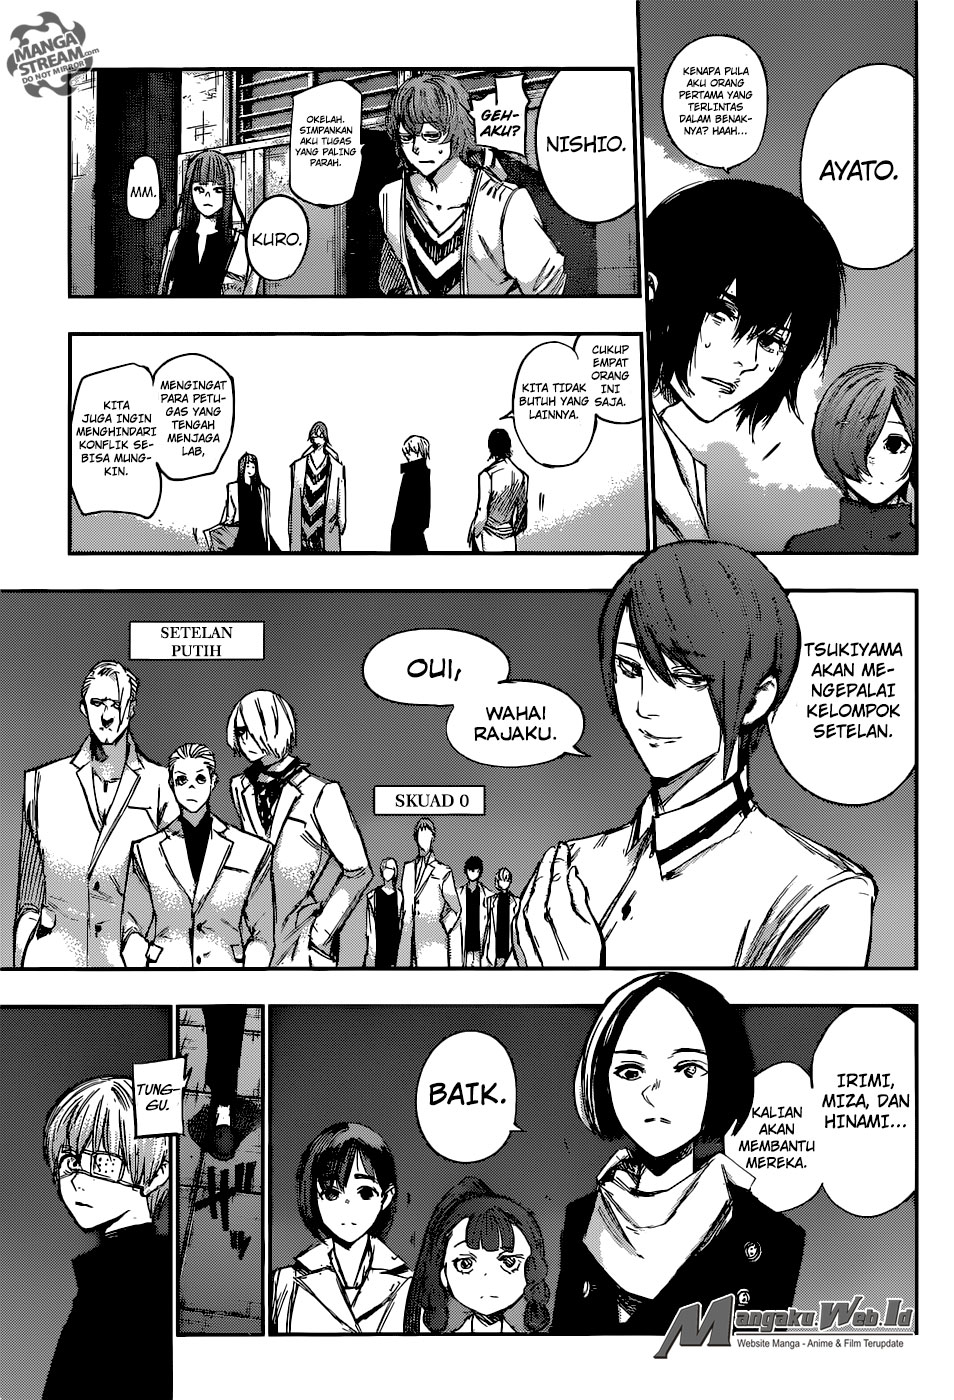 Tokyo Ghoul:re Chapter 104-13